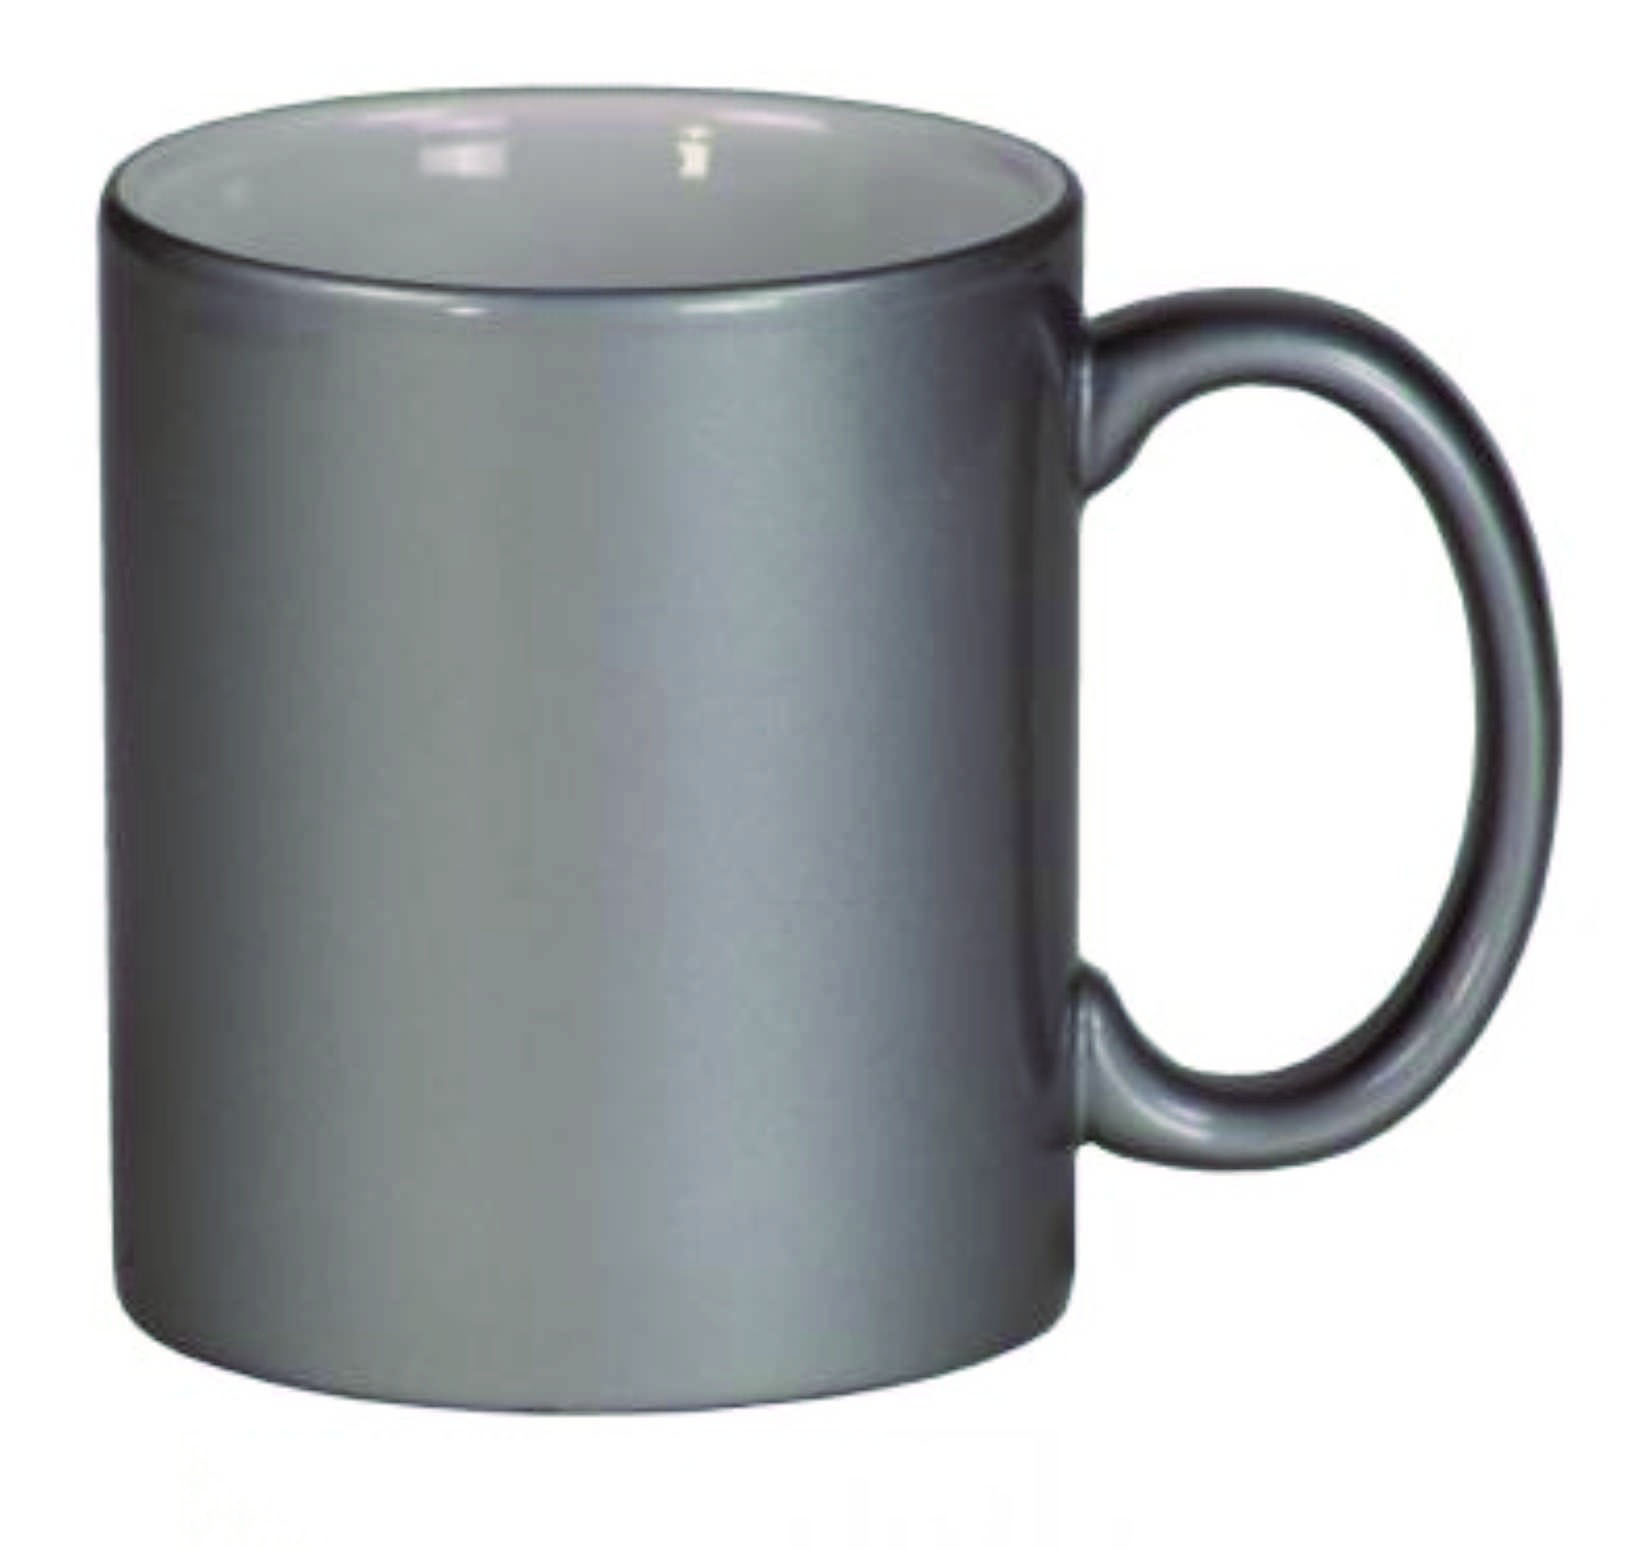 Mug clipart silver Long Room:ceramic Travel  Latte